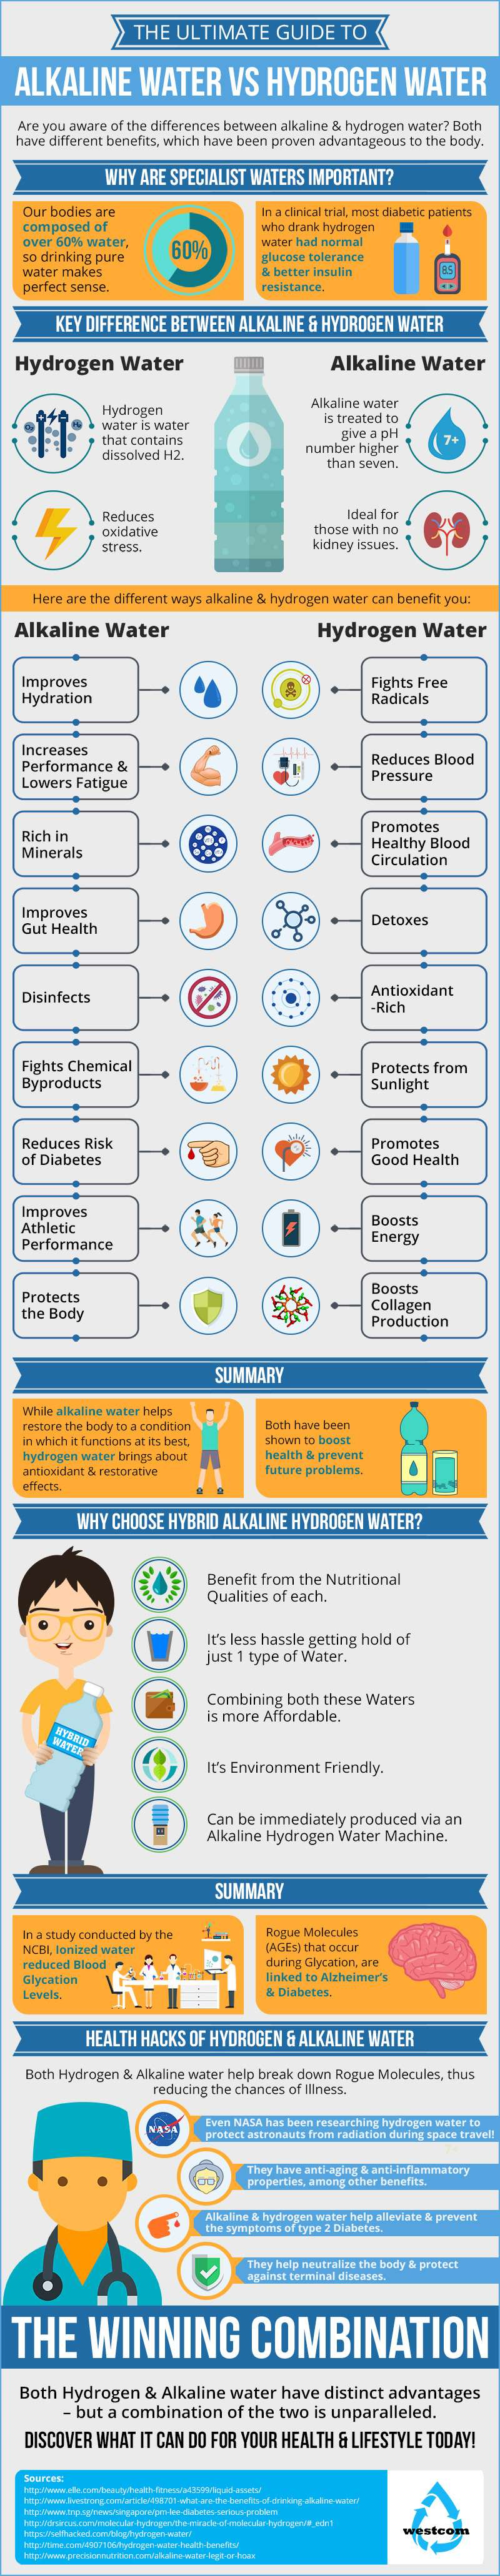 Hydrogen Water vs Alkaline Water Infographic